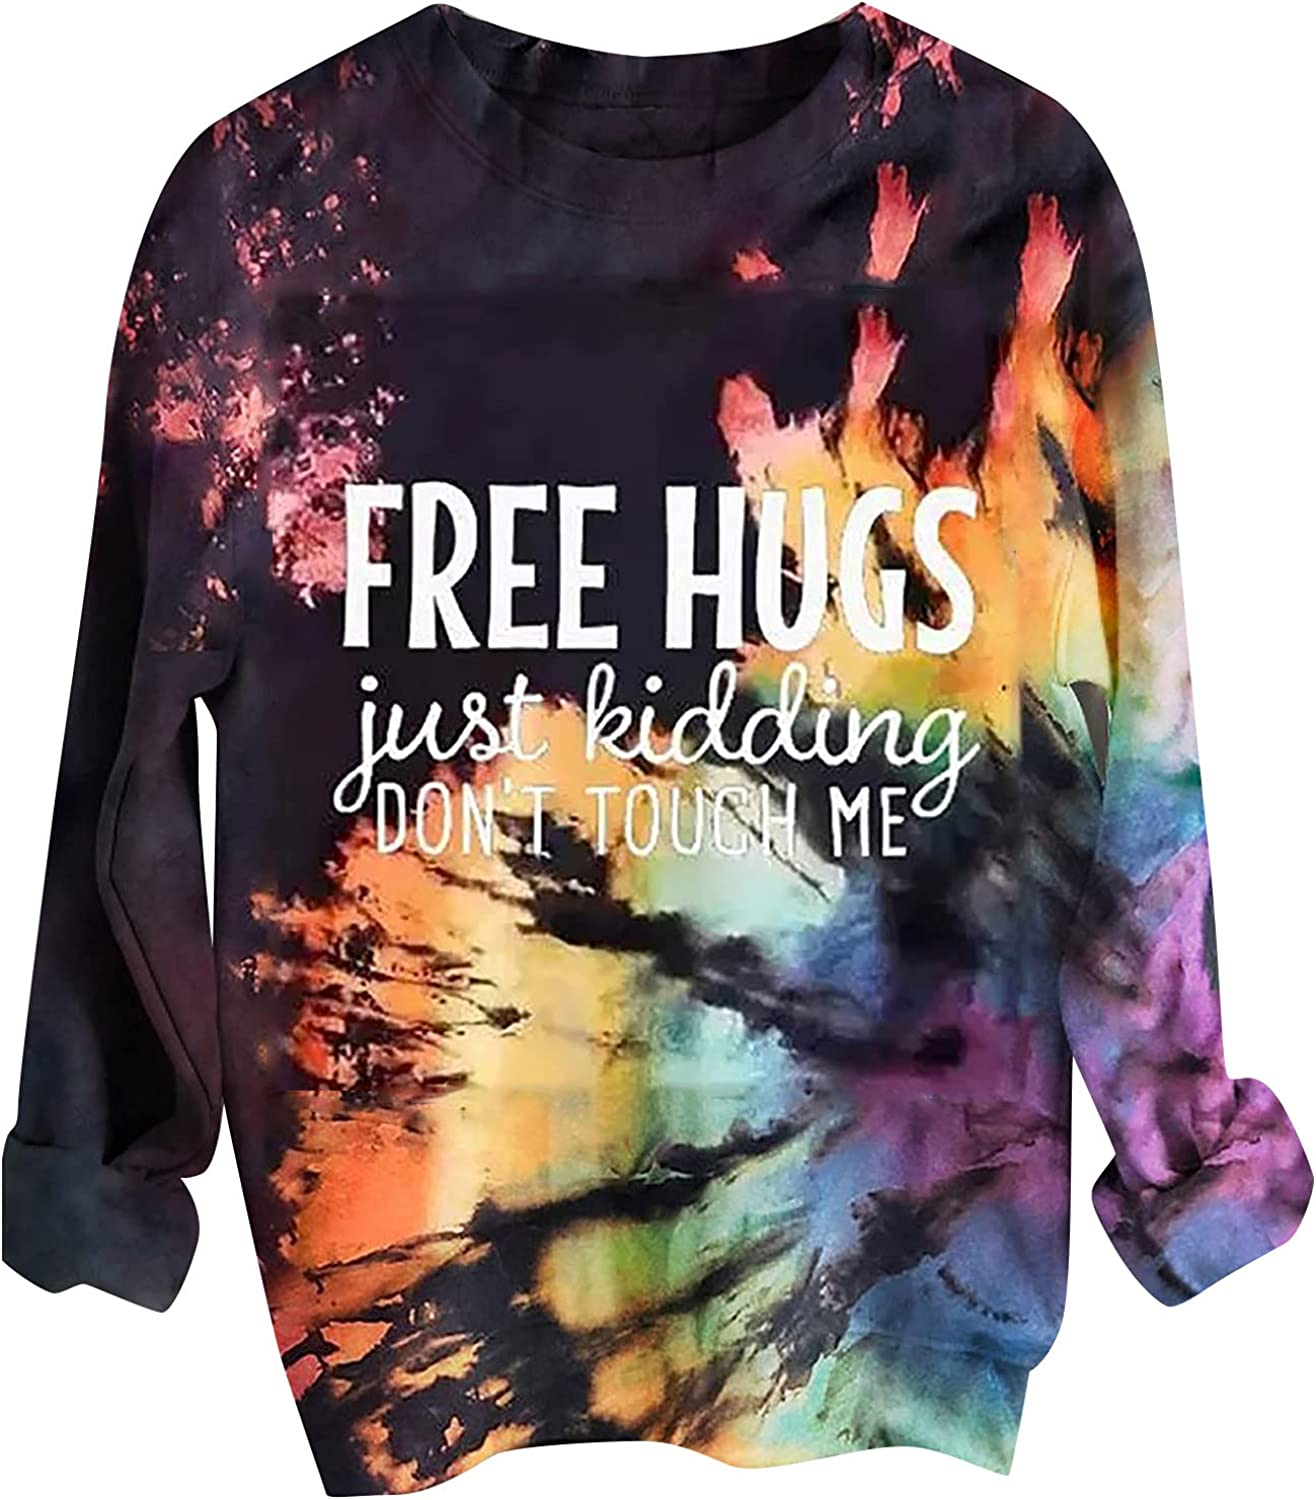 Halloween Sweatshirt for Women's Tie-dye Letter Print Pullover Tops Casual Crewneck Long Sleeve Loose Fashion Blouse